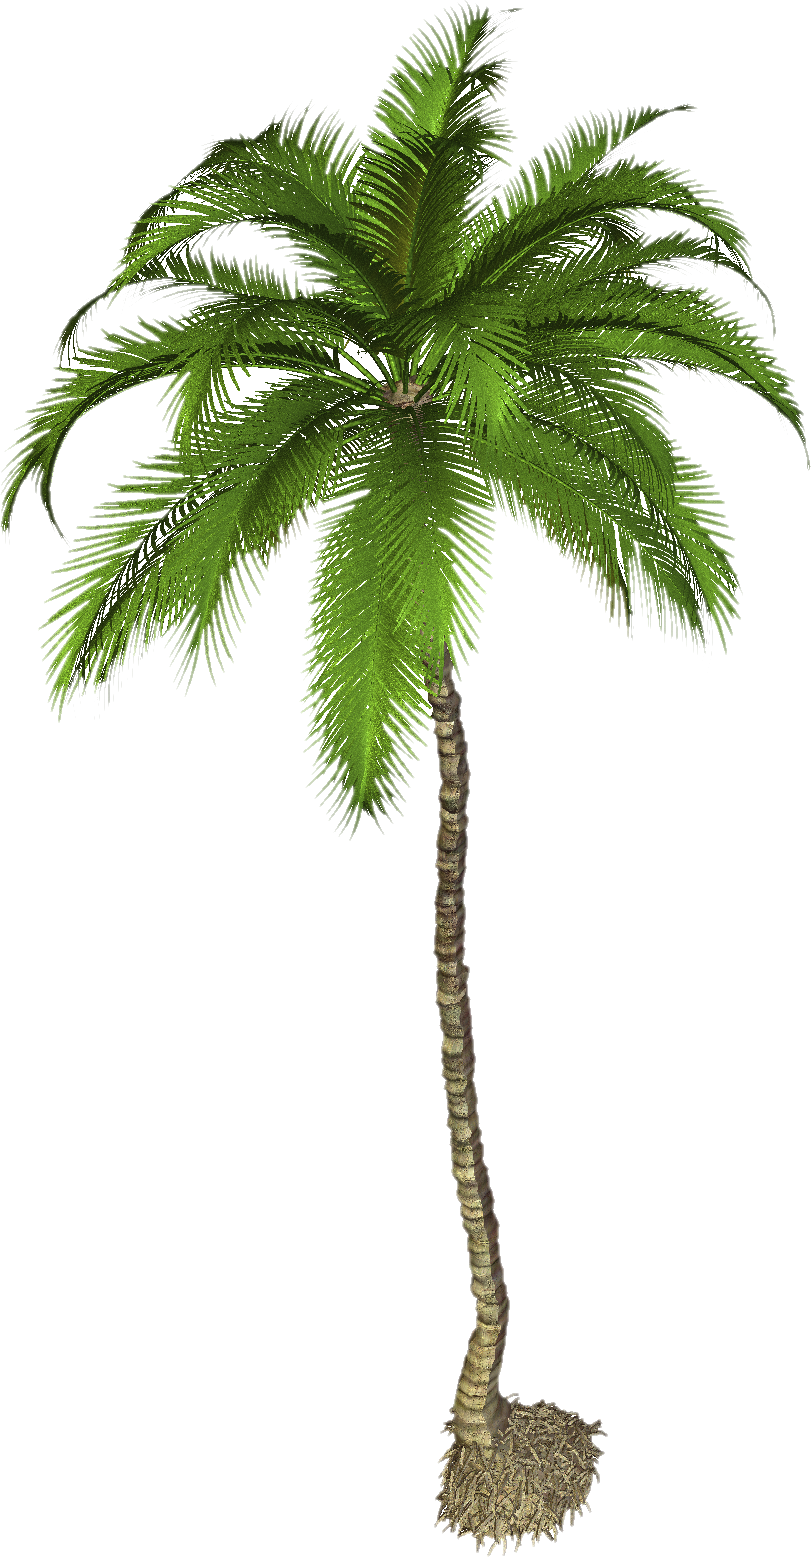 Tropical palm tree png. Transparent images all pic